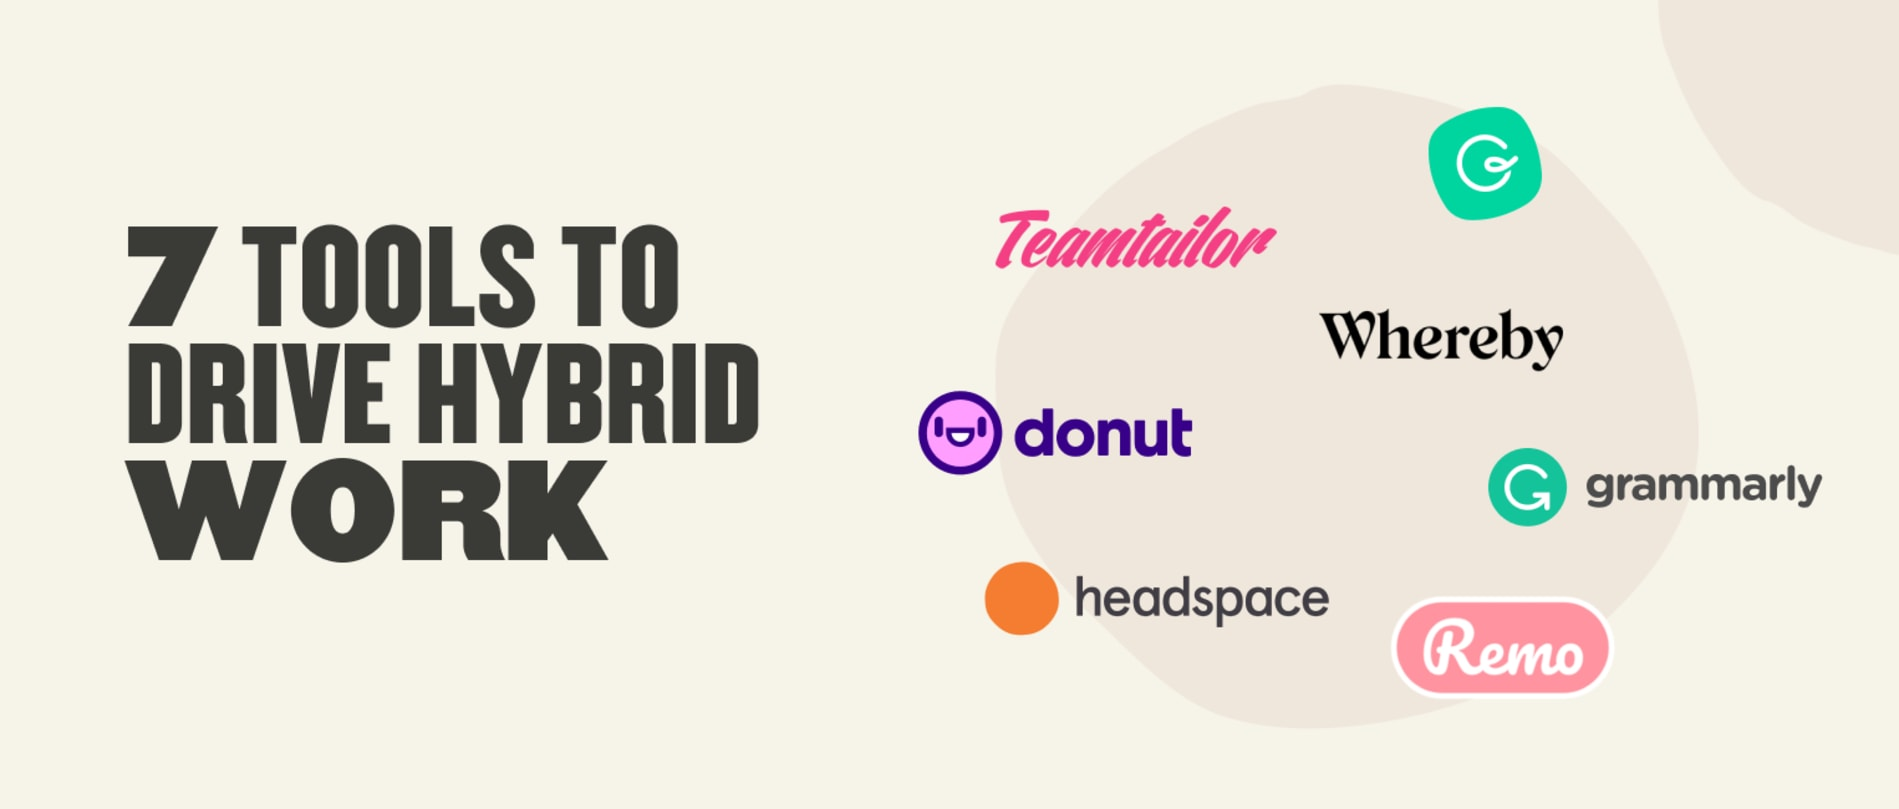 7 best tools for hybrid work